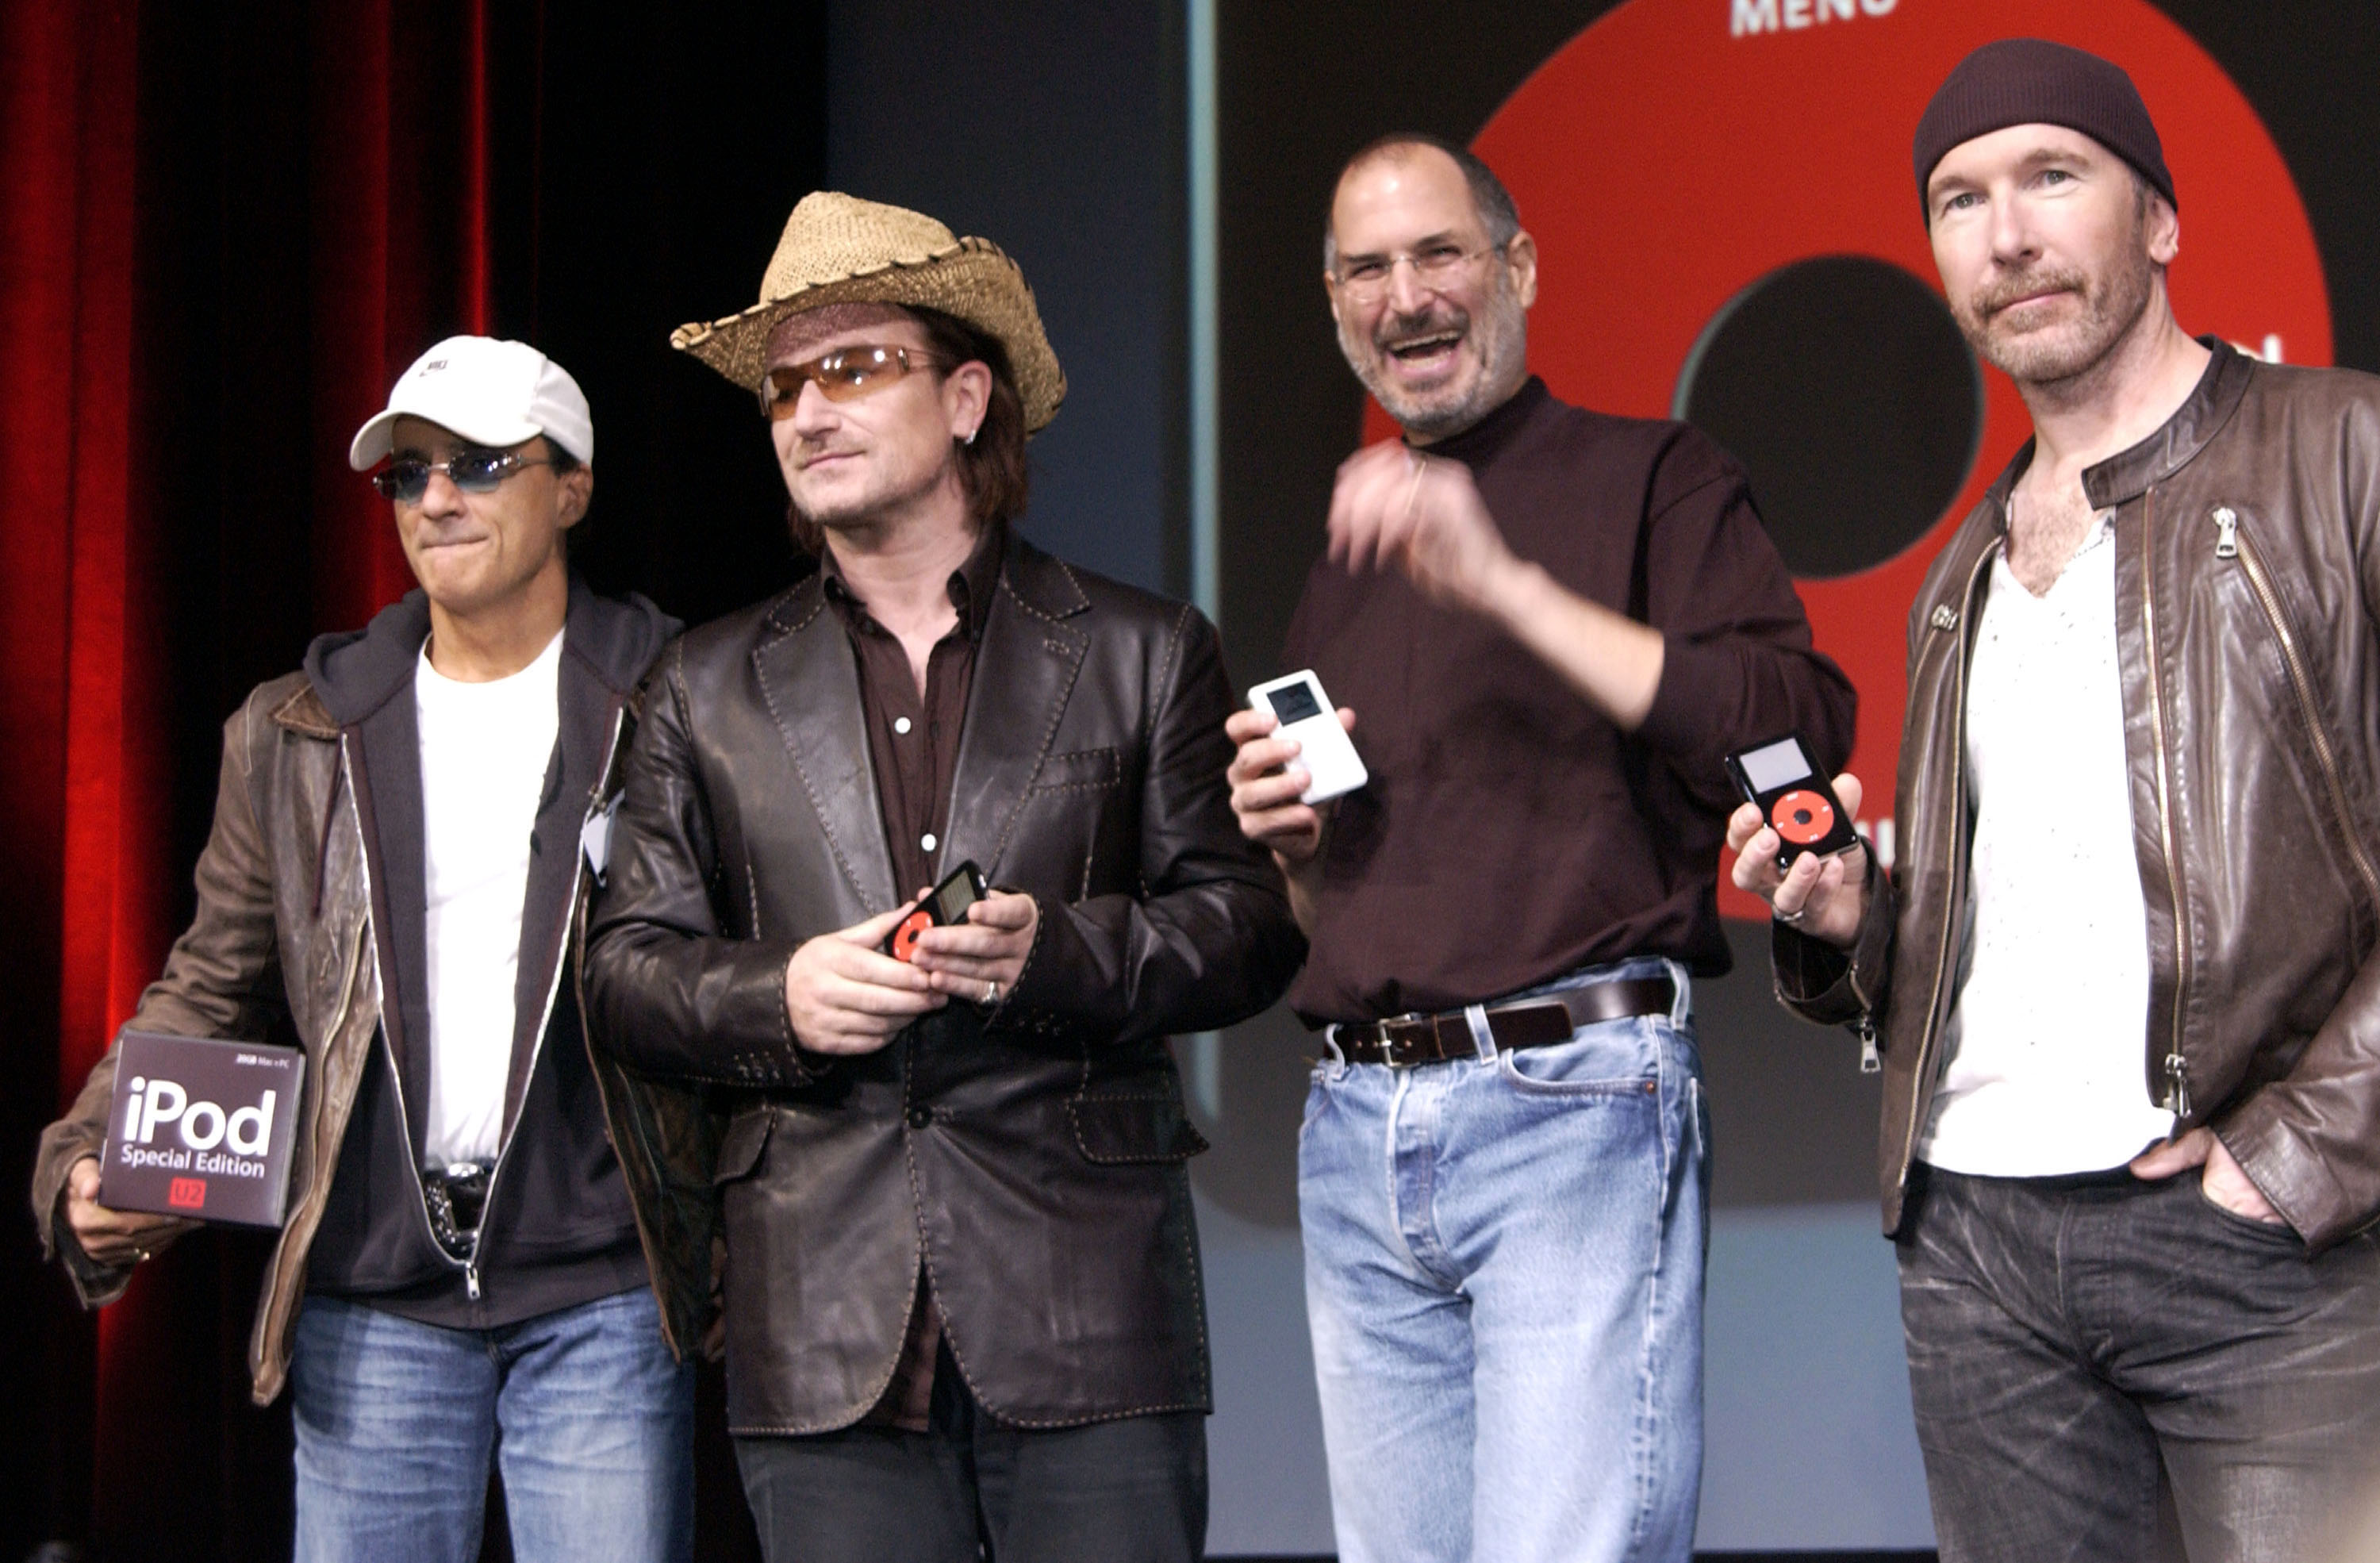 Steve Jobs (2nd-R) of Apple Computer poses with Interscope Geffen A&M Records Chairman Jimmy Iovine (L) Bono (2nd-L) and The Edge (R) of U2 at a celebration of the release of a new Apple iPod family of products at the California Theatre on Oct. 26, 2004 in San Jose, Calif.